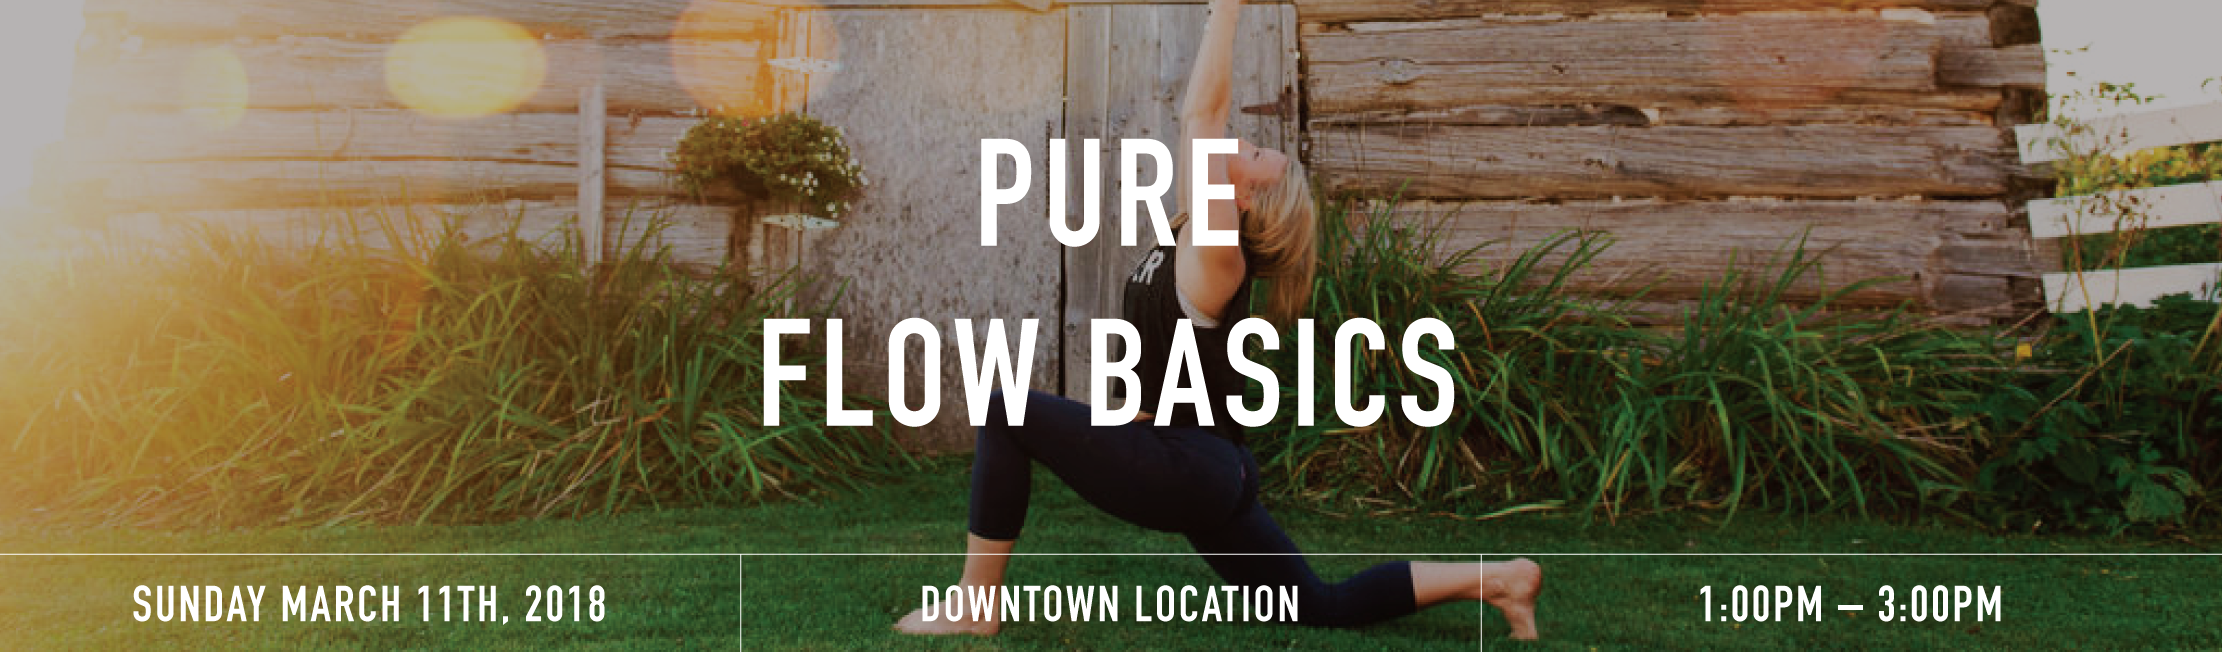 Pure flow basics banner